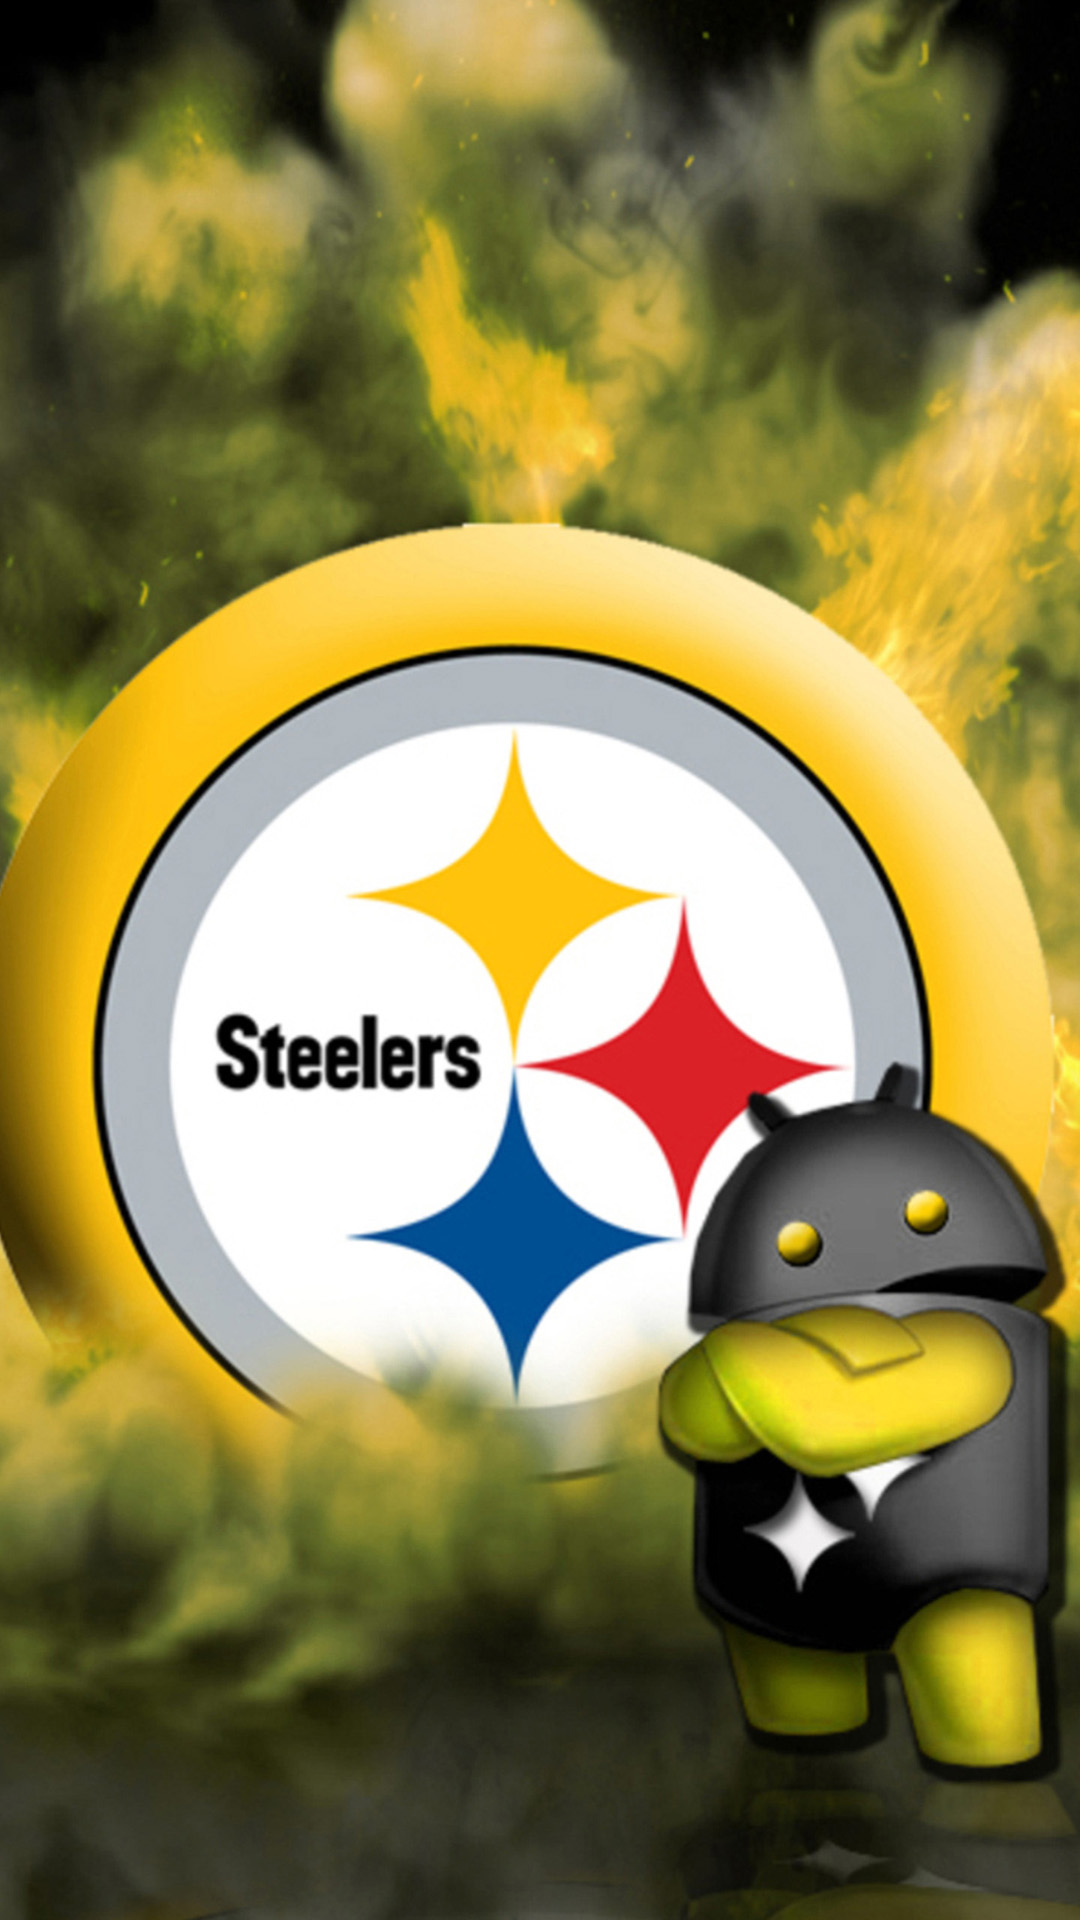 Android-Steelers-Galaxy-S-HD-1080×1920-wallpaper-wp3402365